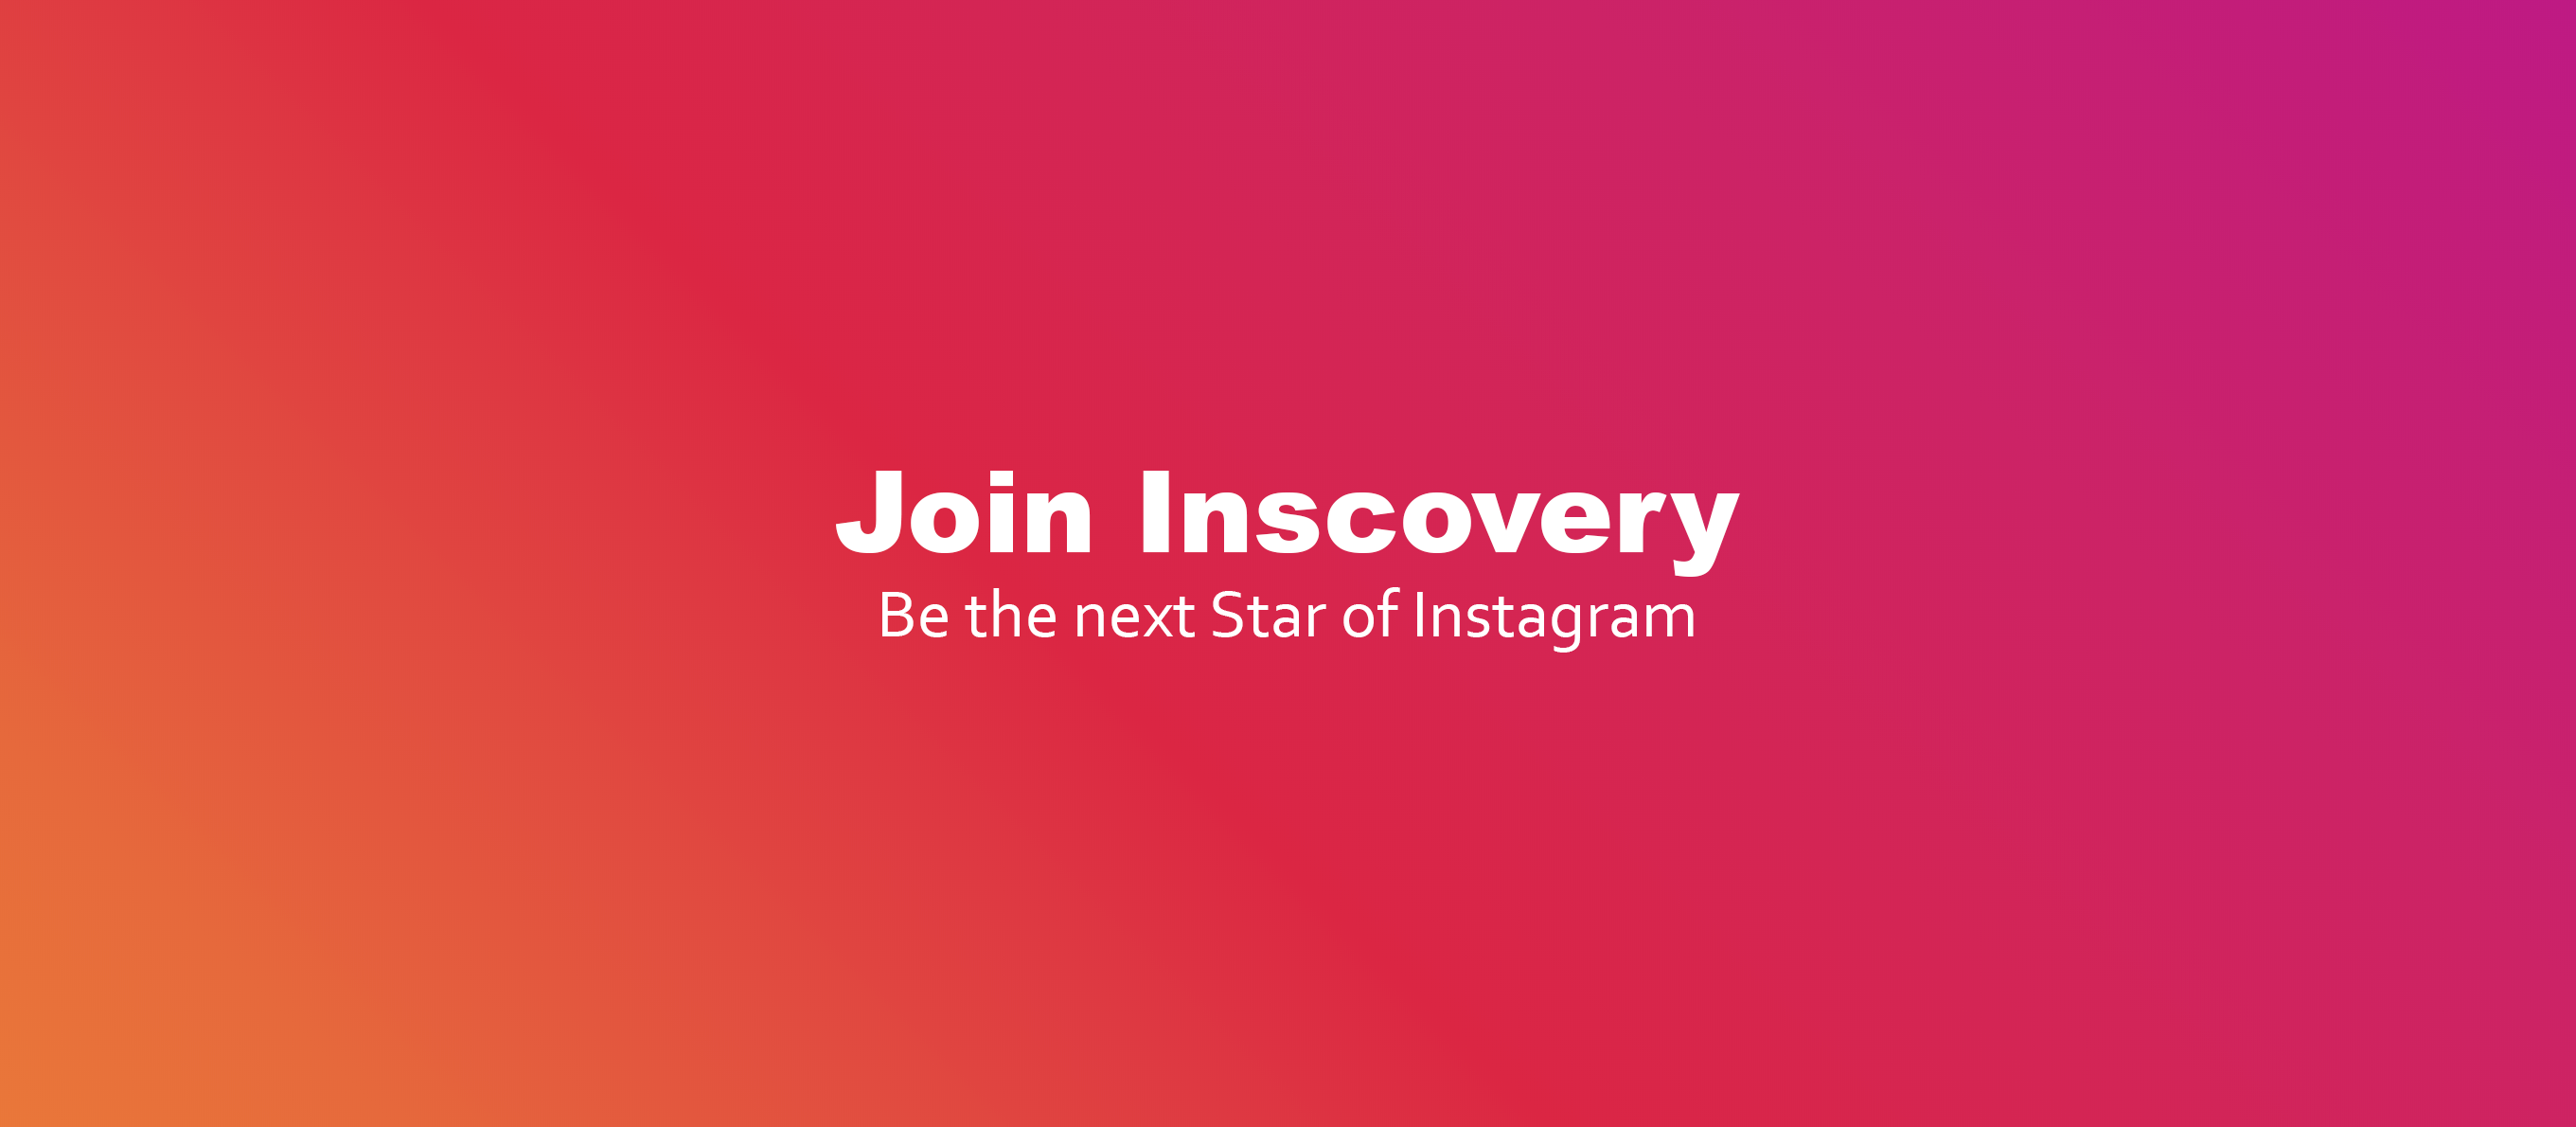 Inscovery - Discover unique Instagram users that share your interests